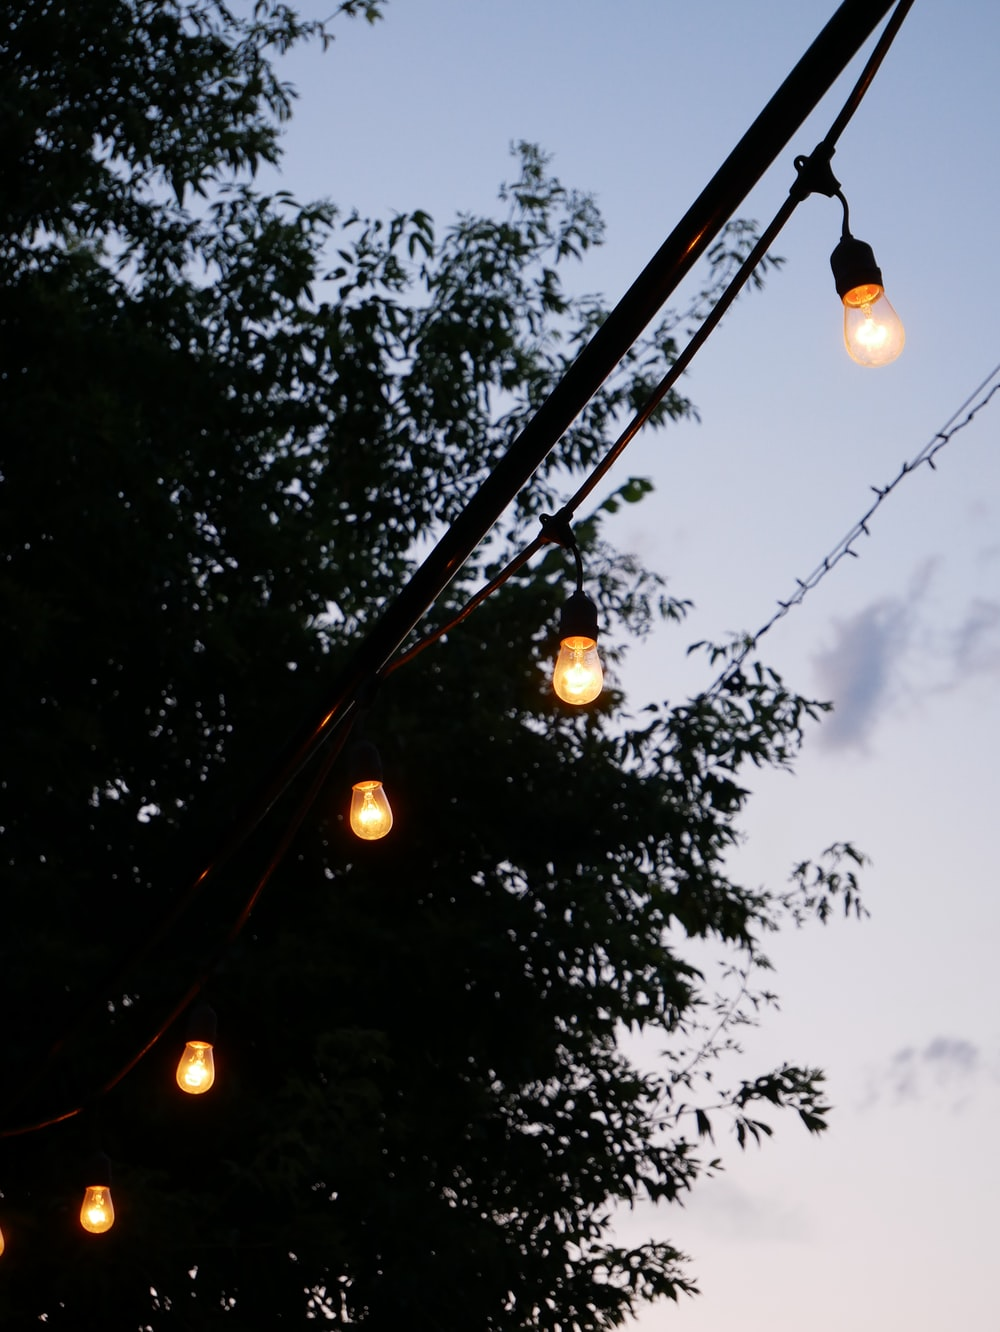 black metal post with string lights during night time